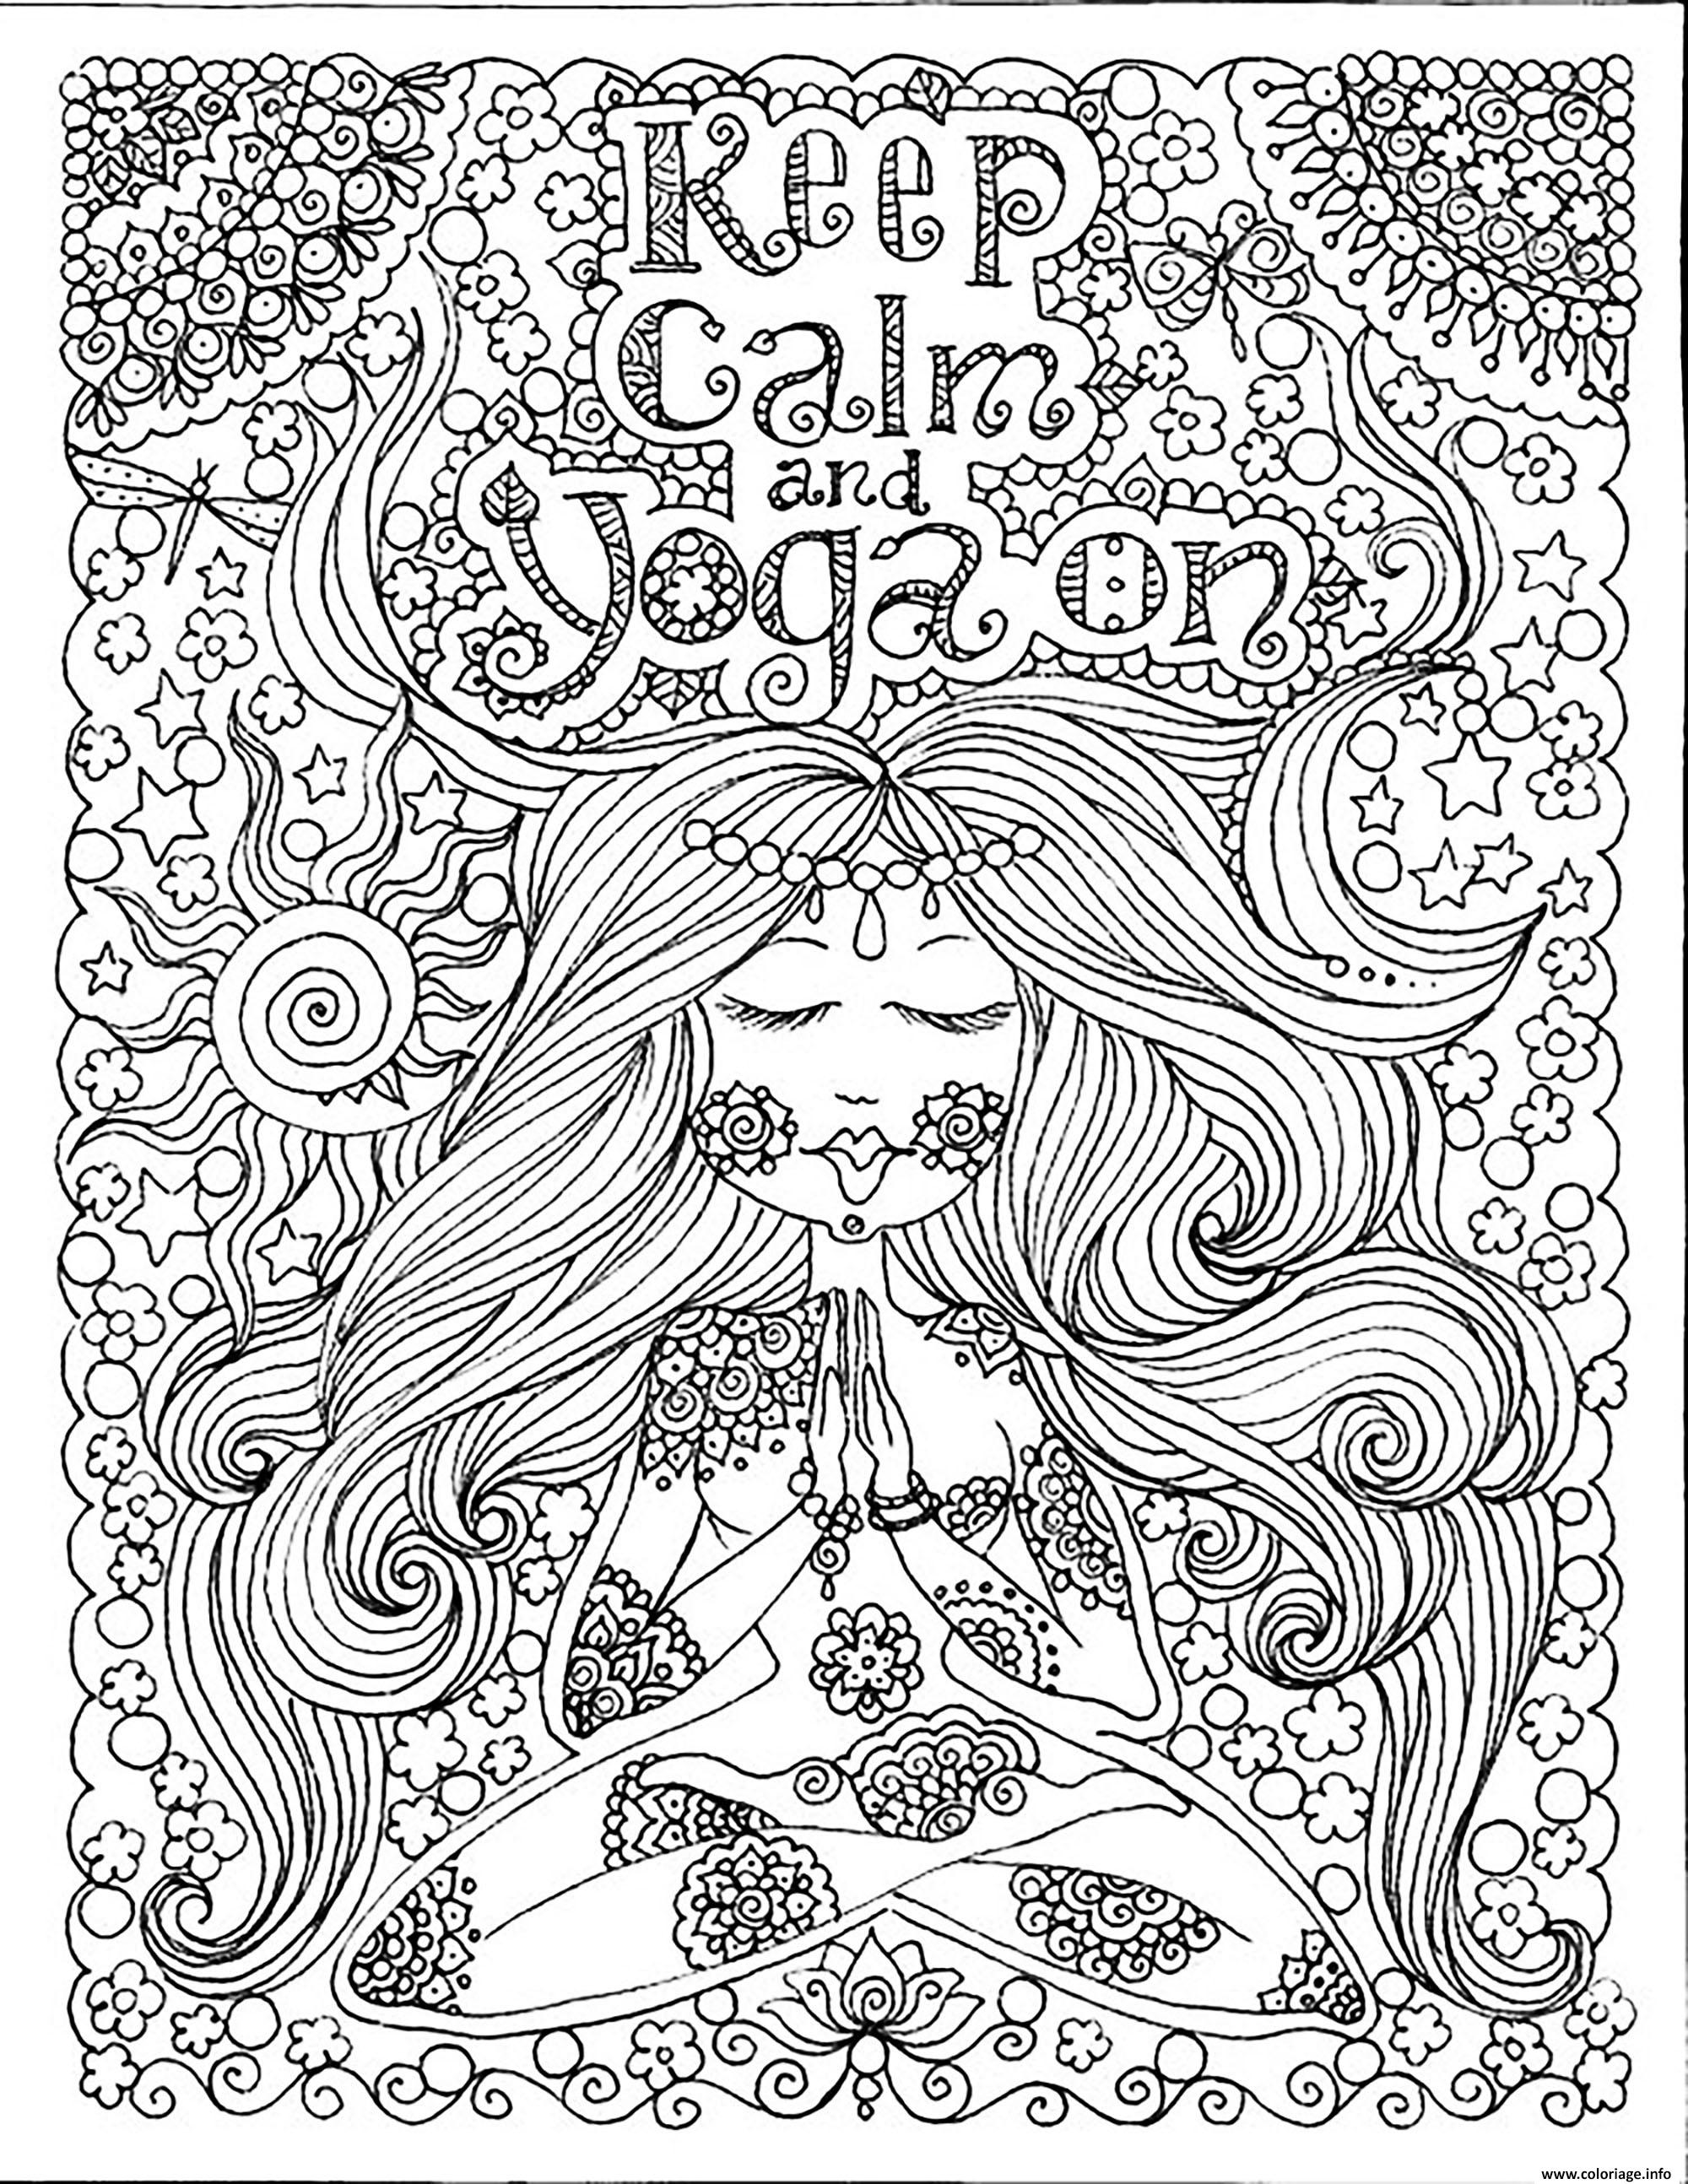 Dessin adulte keep calm and do yoga par deborah muller Coloriage Gratuit à Imprimer